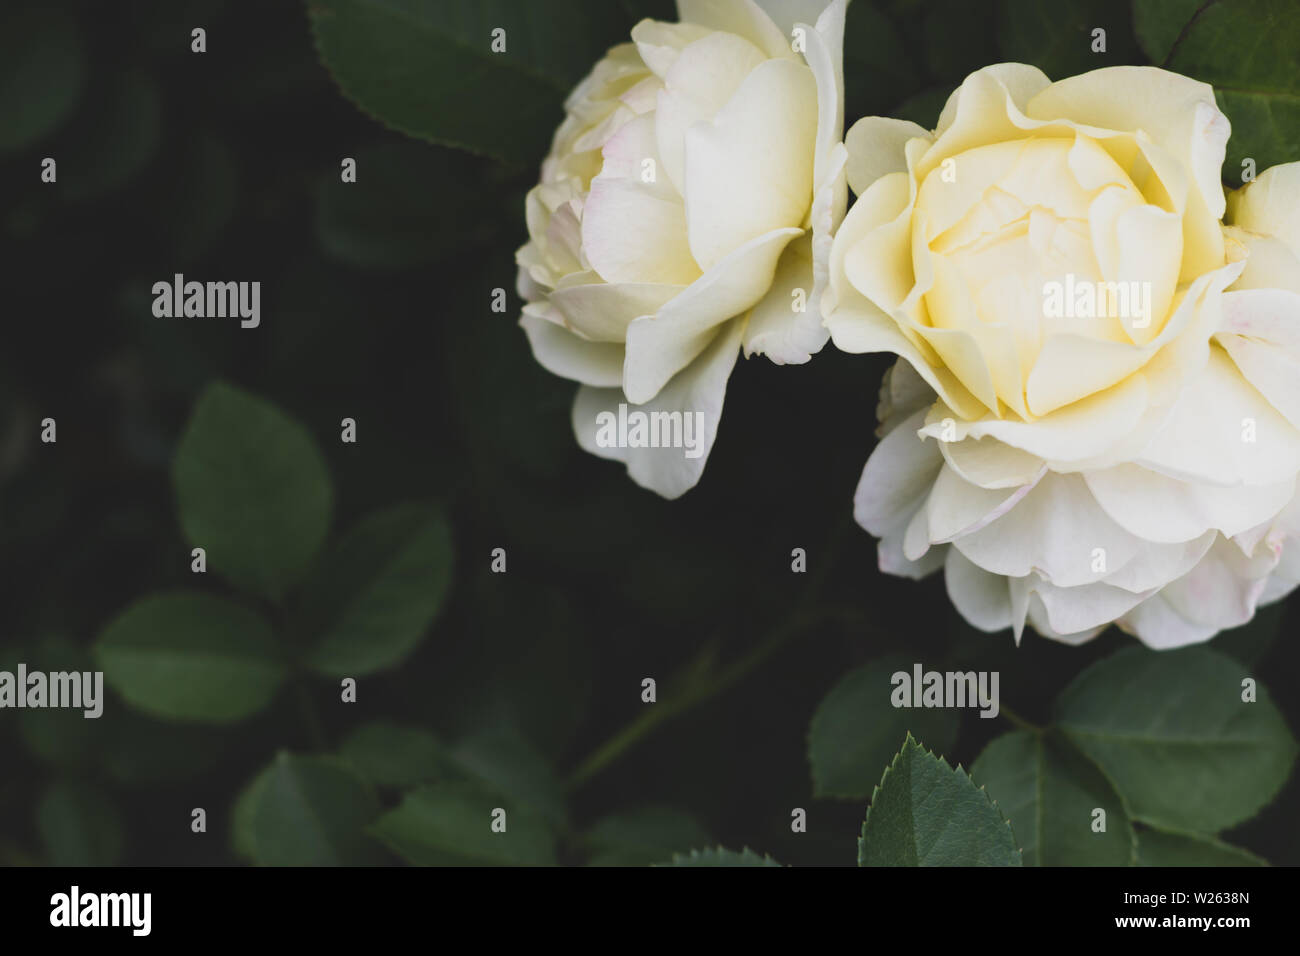 flower power, Uetersener monastery rose with dark green foliage with copy space - Stock Image